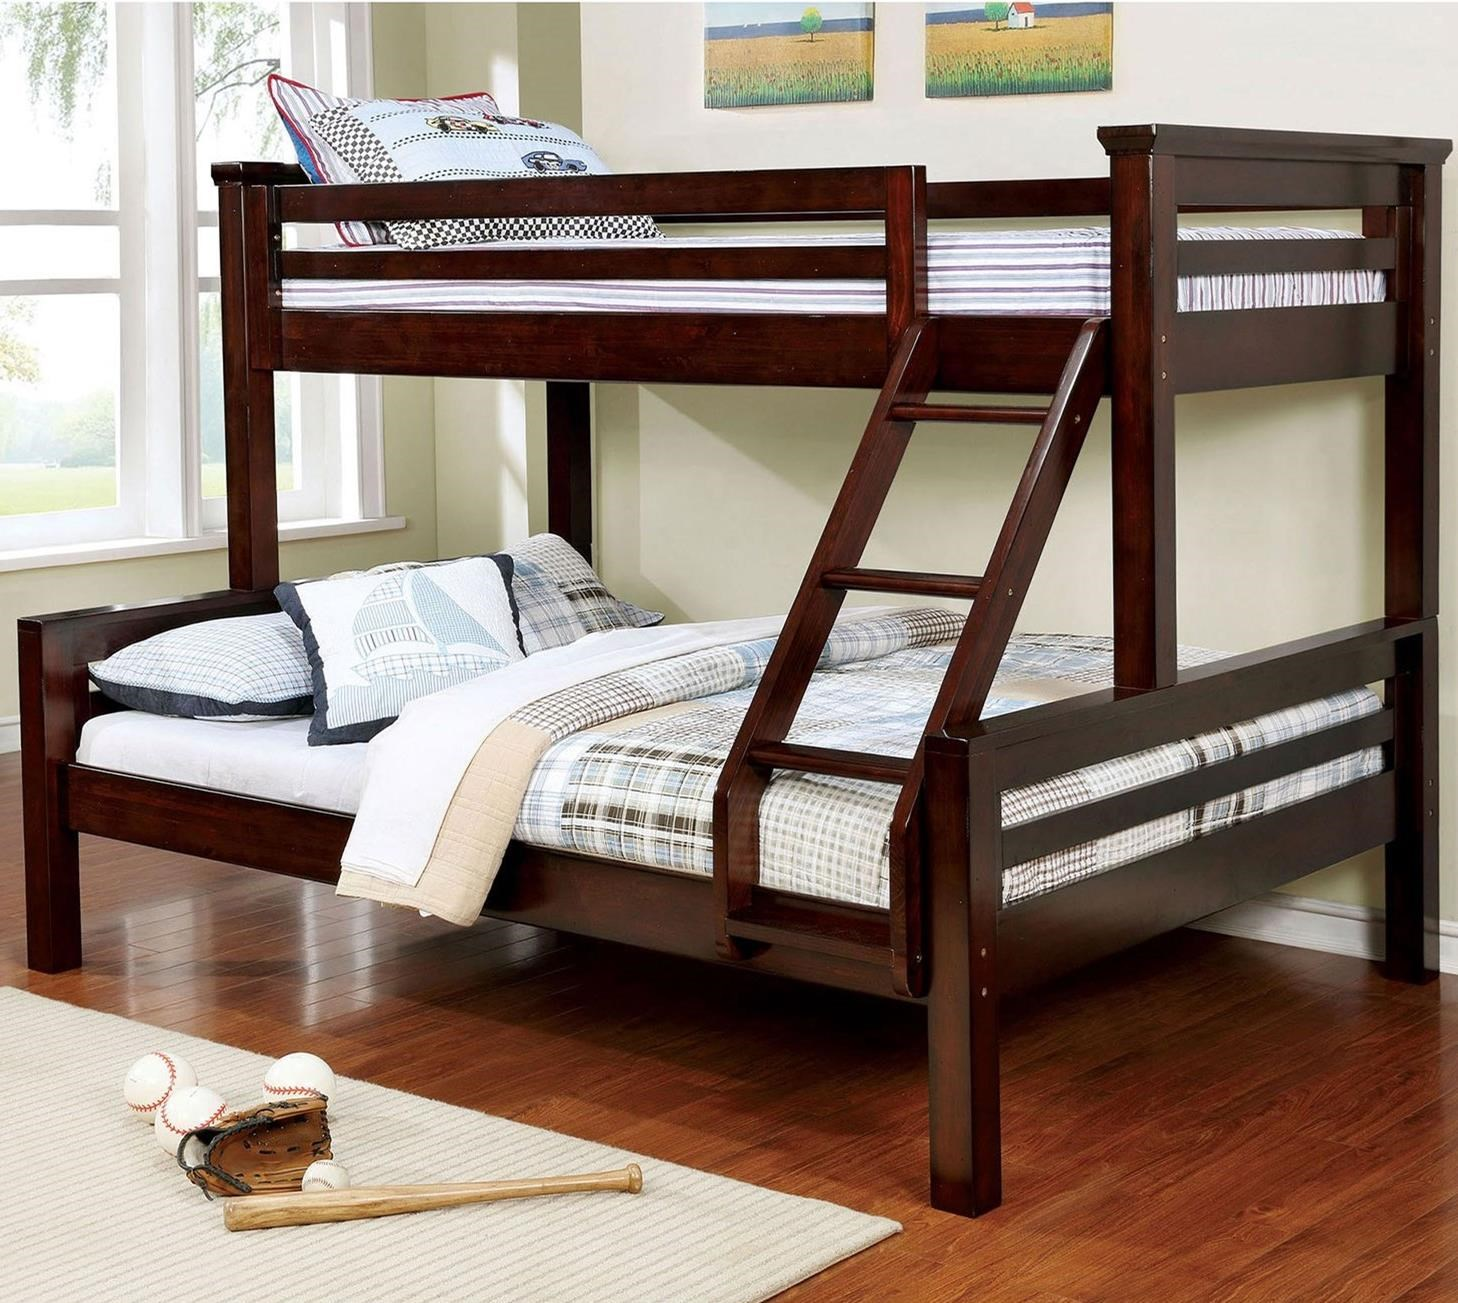 Picture of: Furniture Of America Marcie Cm Bk450tq Bed Extra Large Twin Over Queen Youth Bunk Bed Corner Furniture Bunk Beds